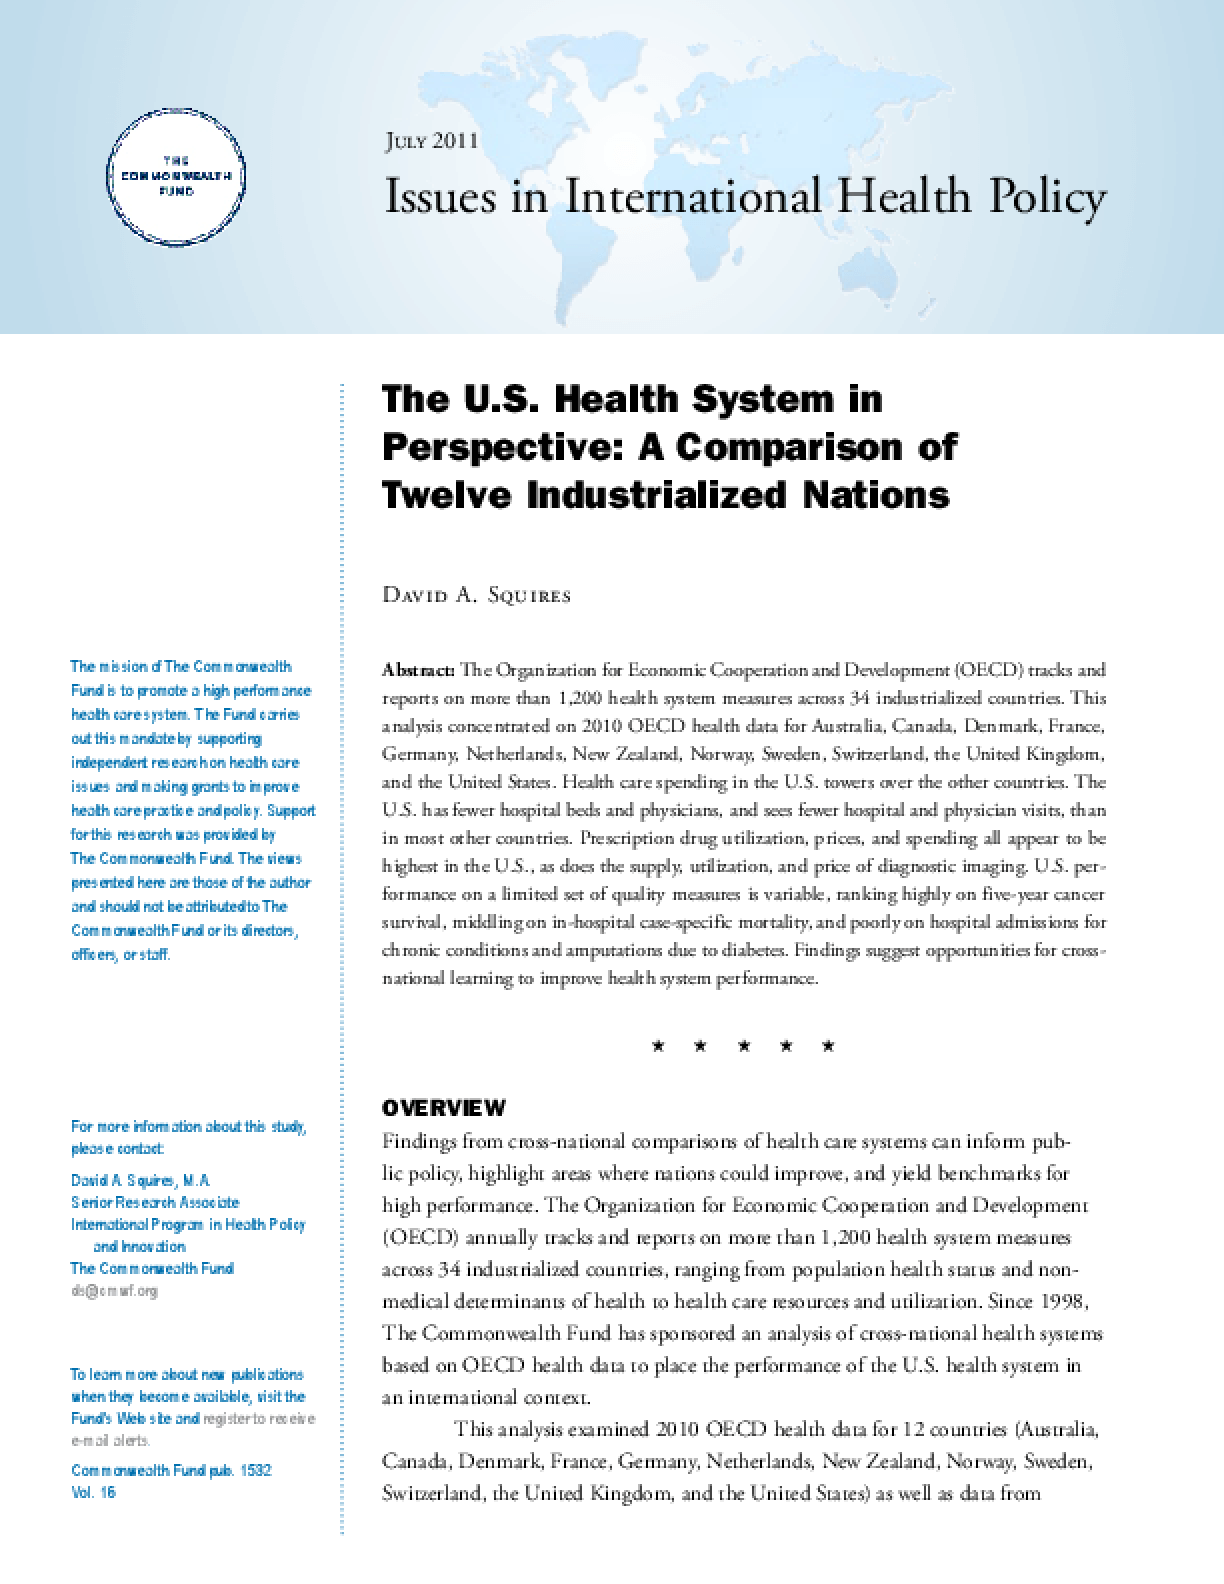 The U.S. Health System in Perspective: A Comparison of Twelve Industrialized Nations